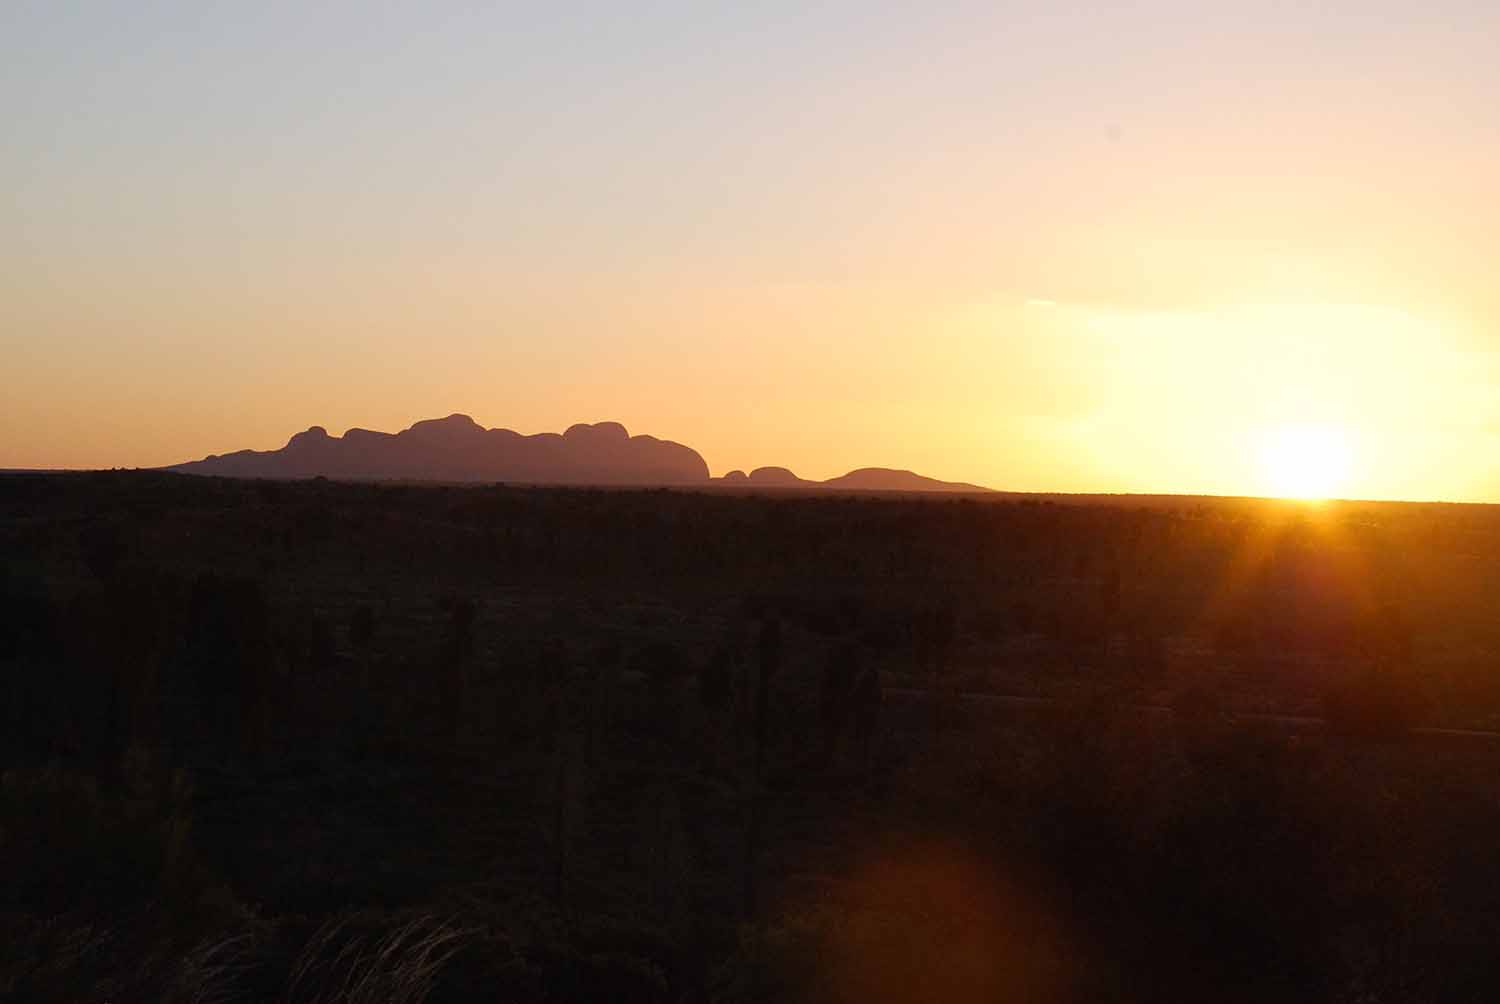 view from the Ghan- The Red Centre